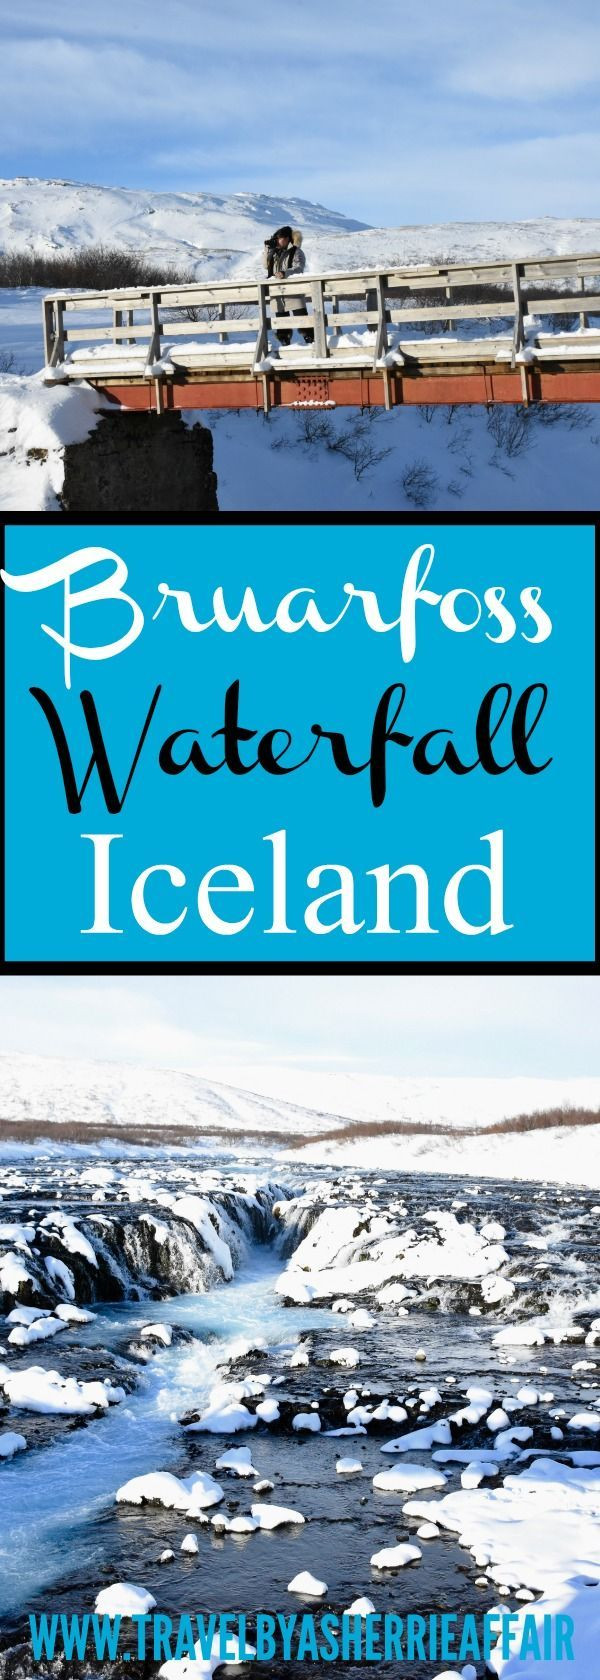 Iceland in the Wintertime- A must to go visit Bruarfoss Waterfall in the wintertime!  The turquoise blue water is spectacular.  It is a little bit of a hike in the snow but so worth it!  Located at the Golden Circle of Iceland.  #Iceland #wintertime #waterfall #Bruarfosswaterfall #Goldencircle #hike #hikinginsnow #snow #hiddengem #turqoisewater